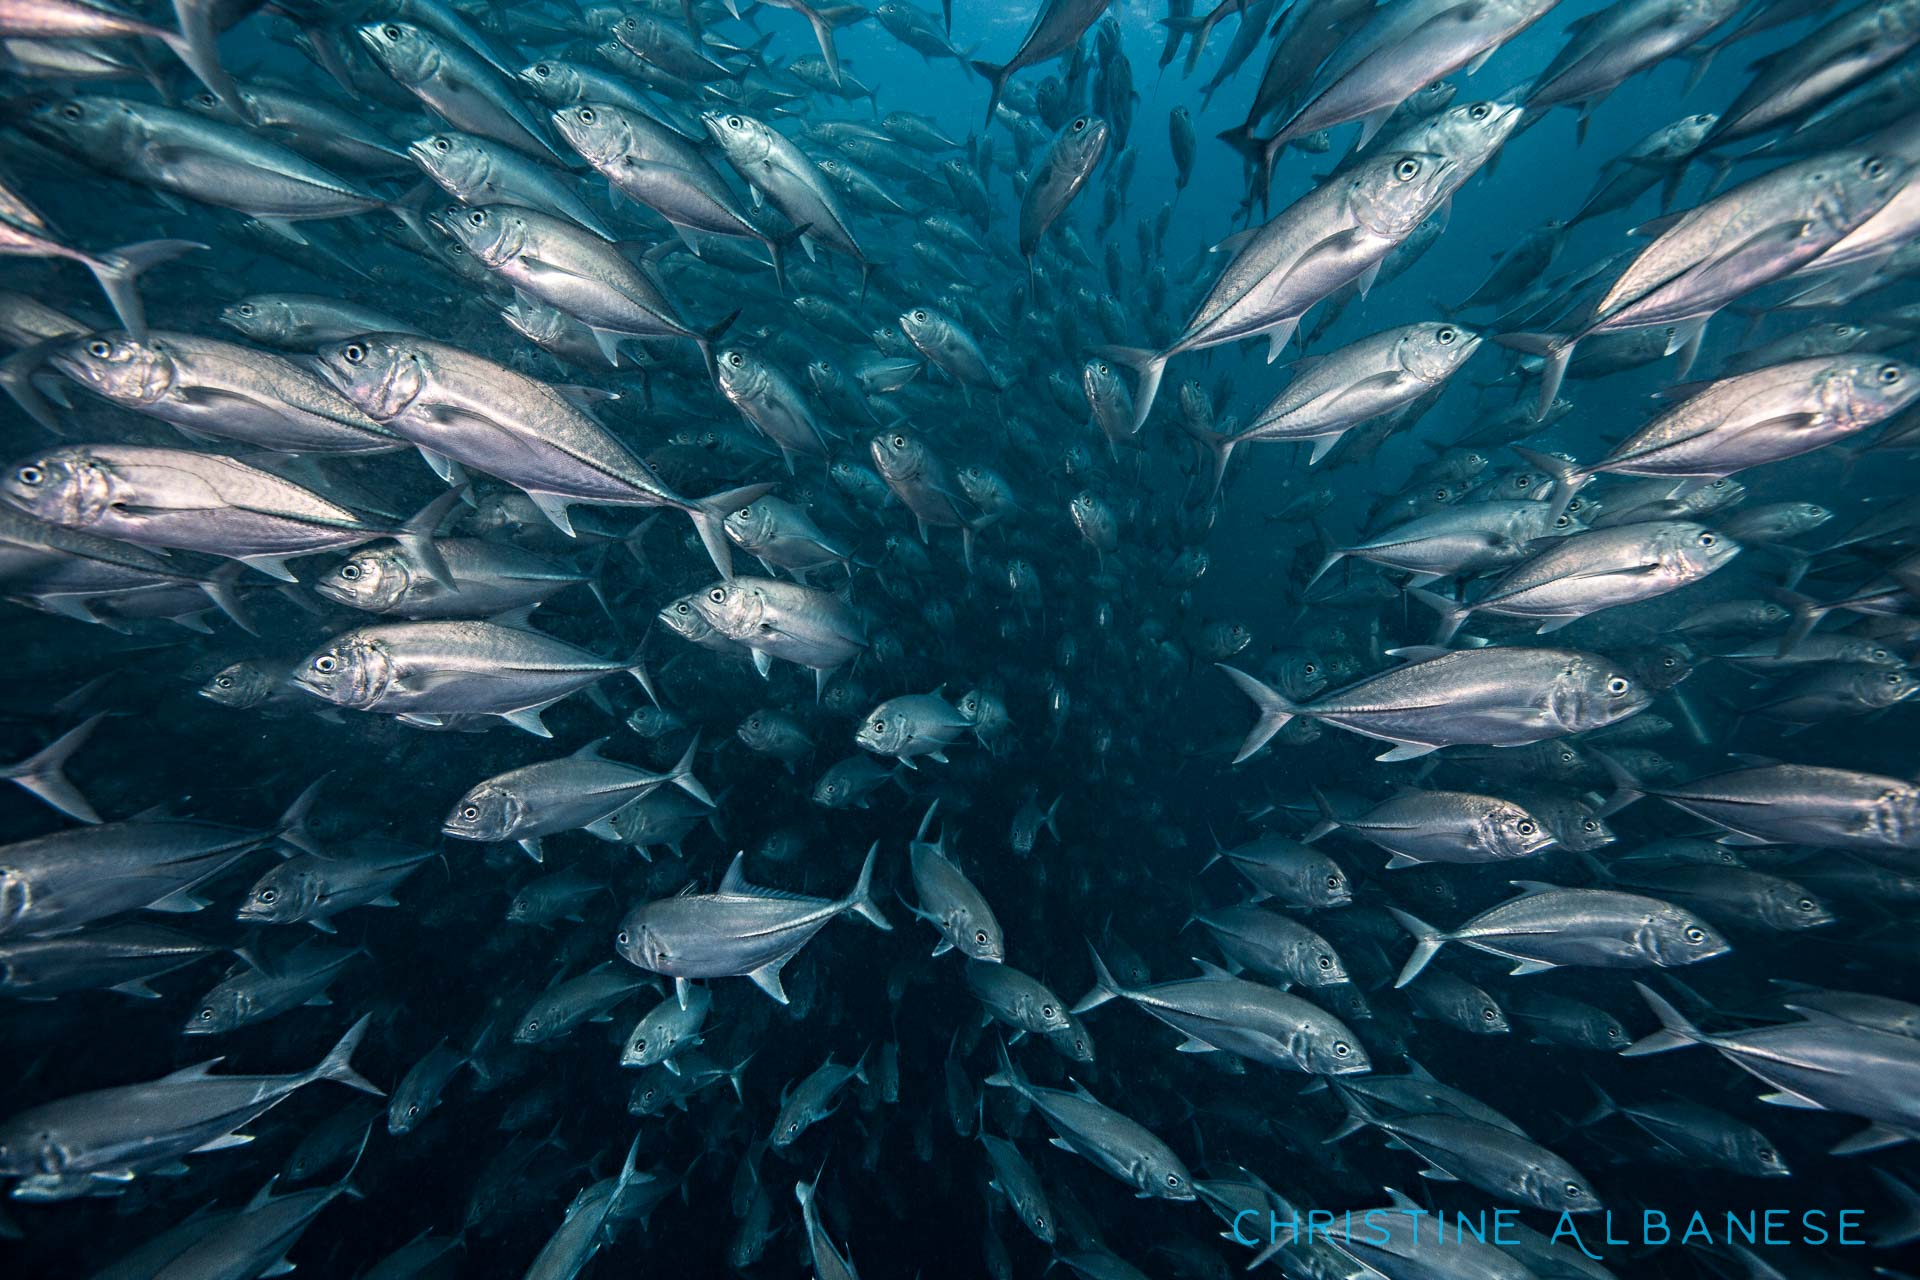 The middle of a massive school fish is one of my favourite places to be! There is no feeling quite like being completely and utterly enveloped by thousands of silvery busy-bodies. ❤️ a school of big-eye travelly has been at Sailrock for years now... I always go looking for them.   #underwater #underwaterdiving #underwaterphotography #ds160 #ikelite #canon6d #trevally #schooloffish #sailrock #kohtao #thailand #scuba #scubadiving #freedom #surrounded #countless #happiness #deepblue #padi